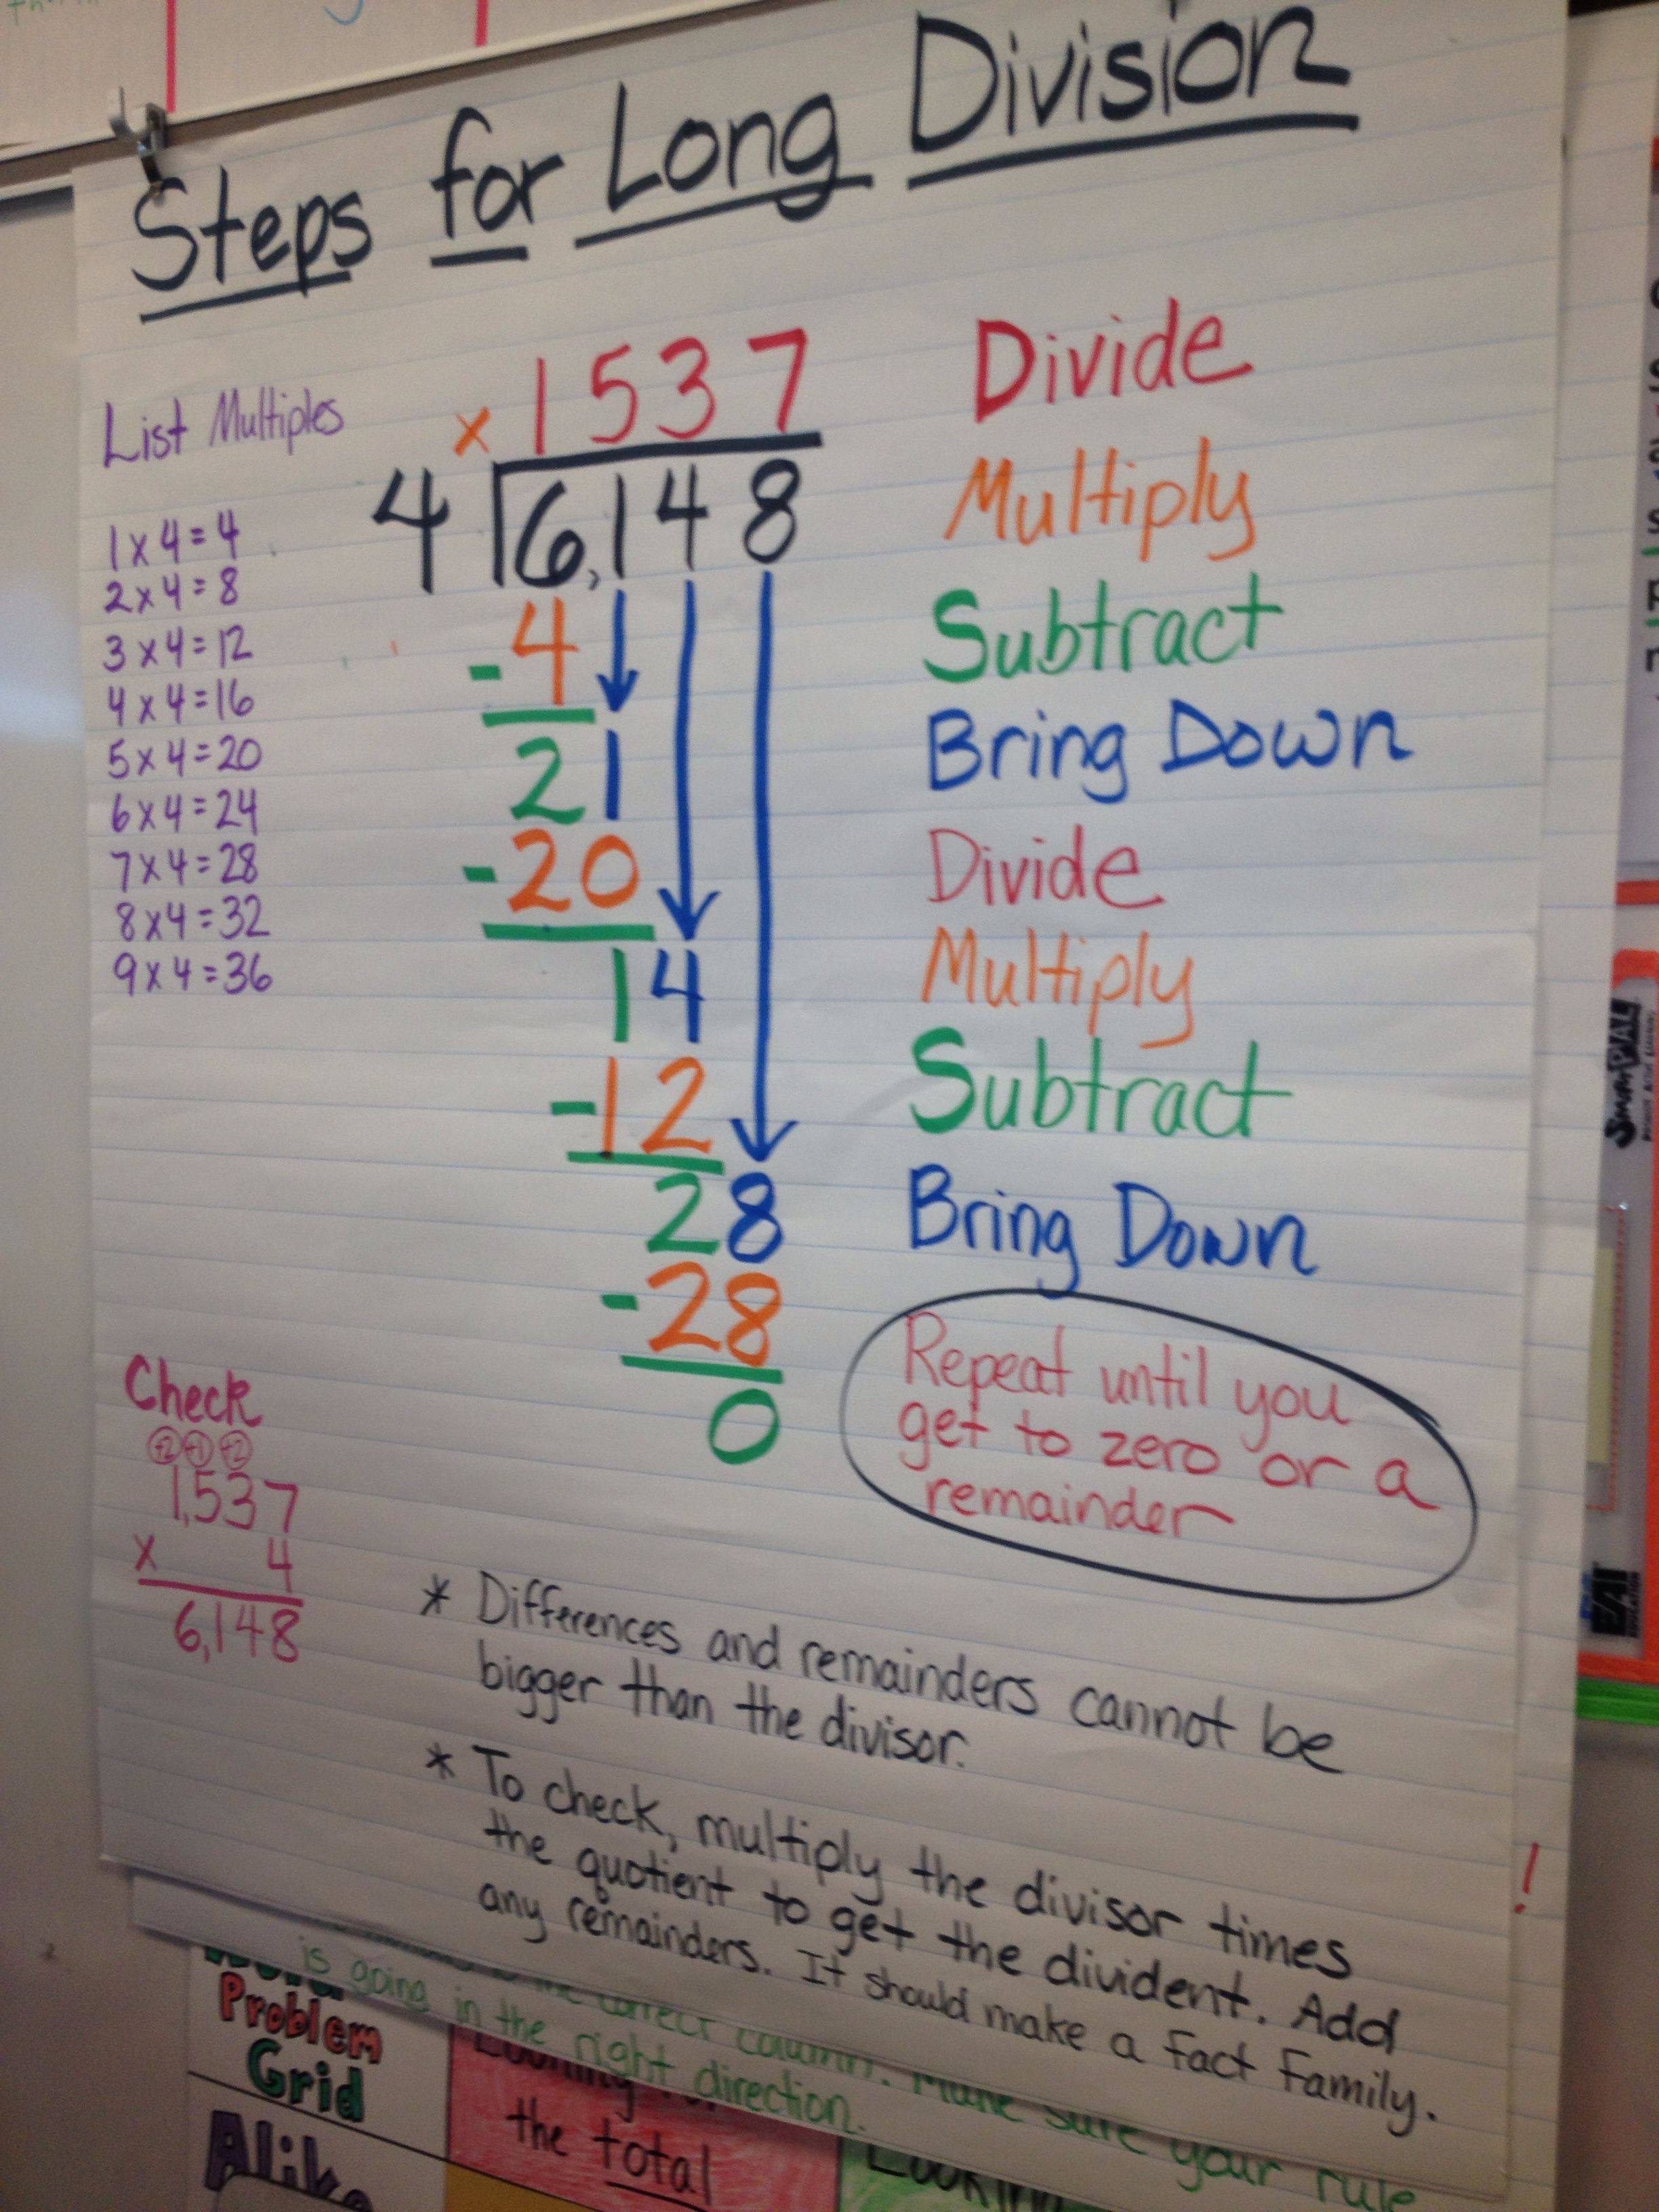 Steps for long division